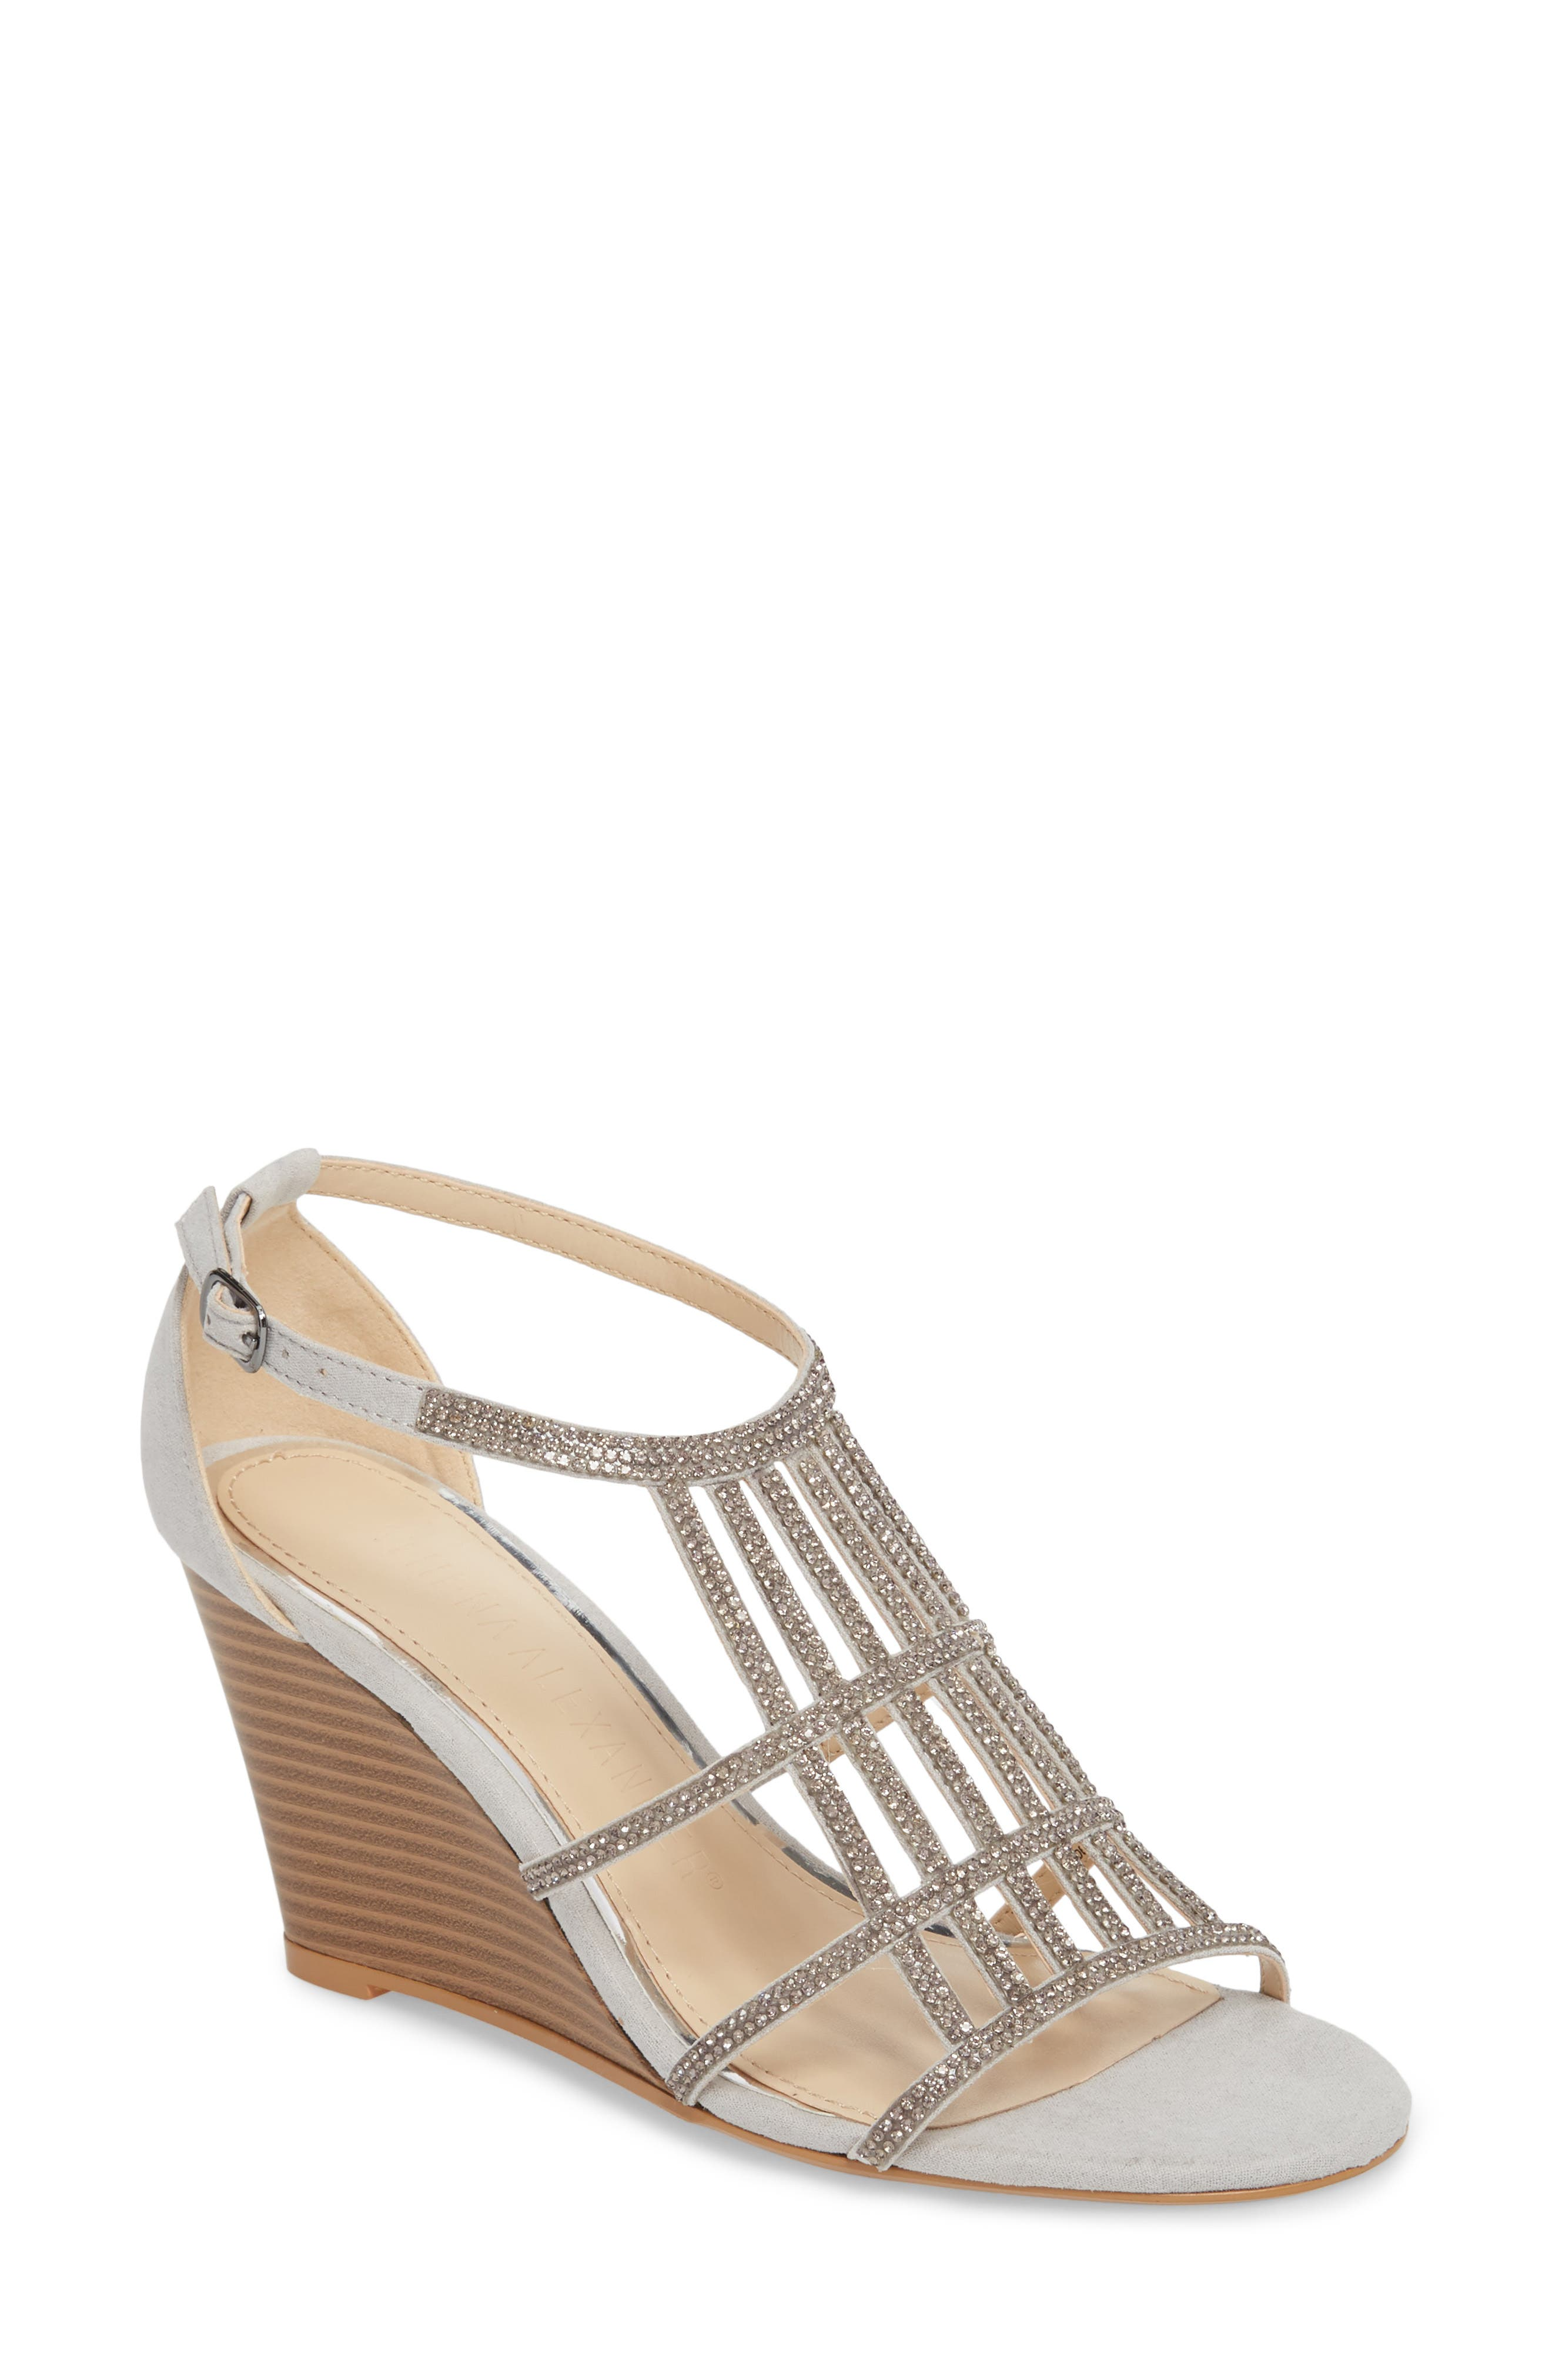 Hampton Crystal Embellished Wedge Sandal,                             Main thumbnail 1, color,                             Grey Suede